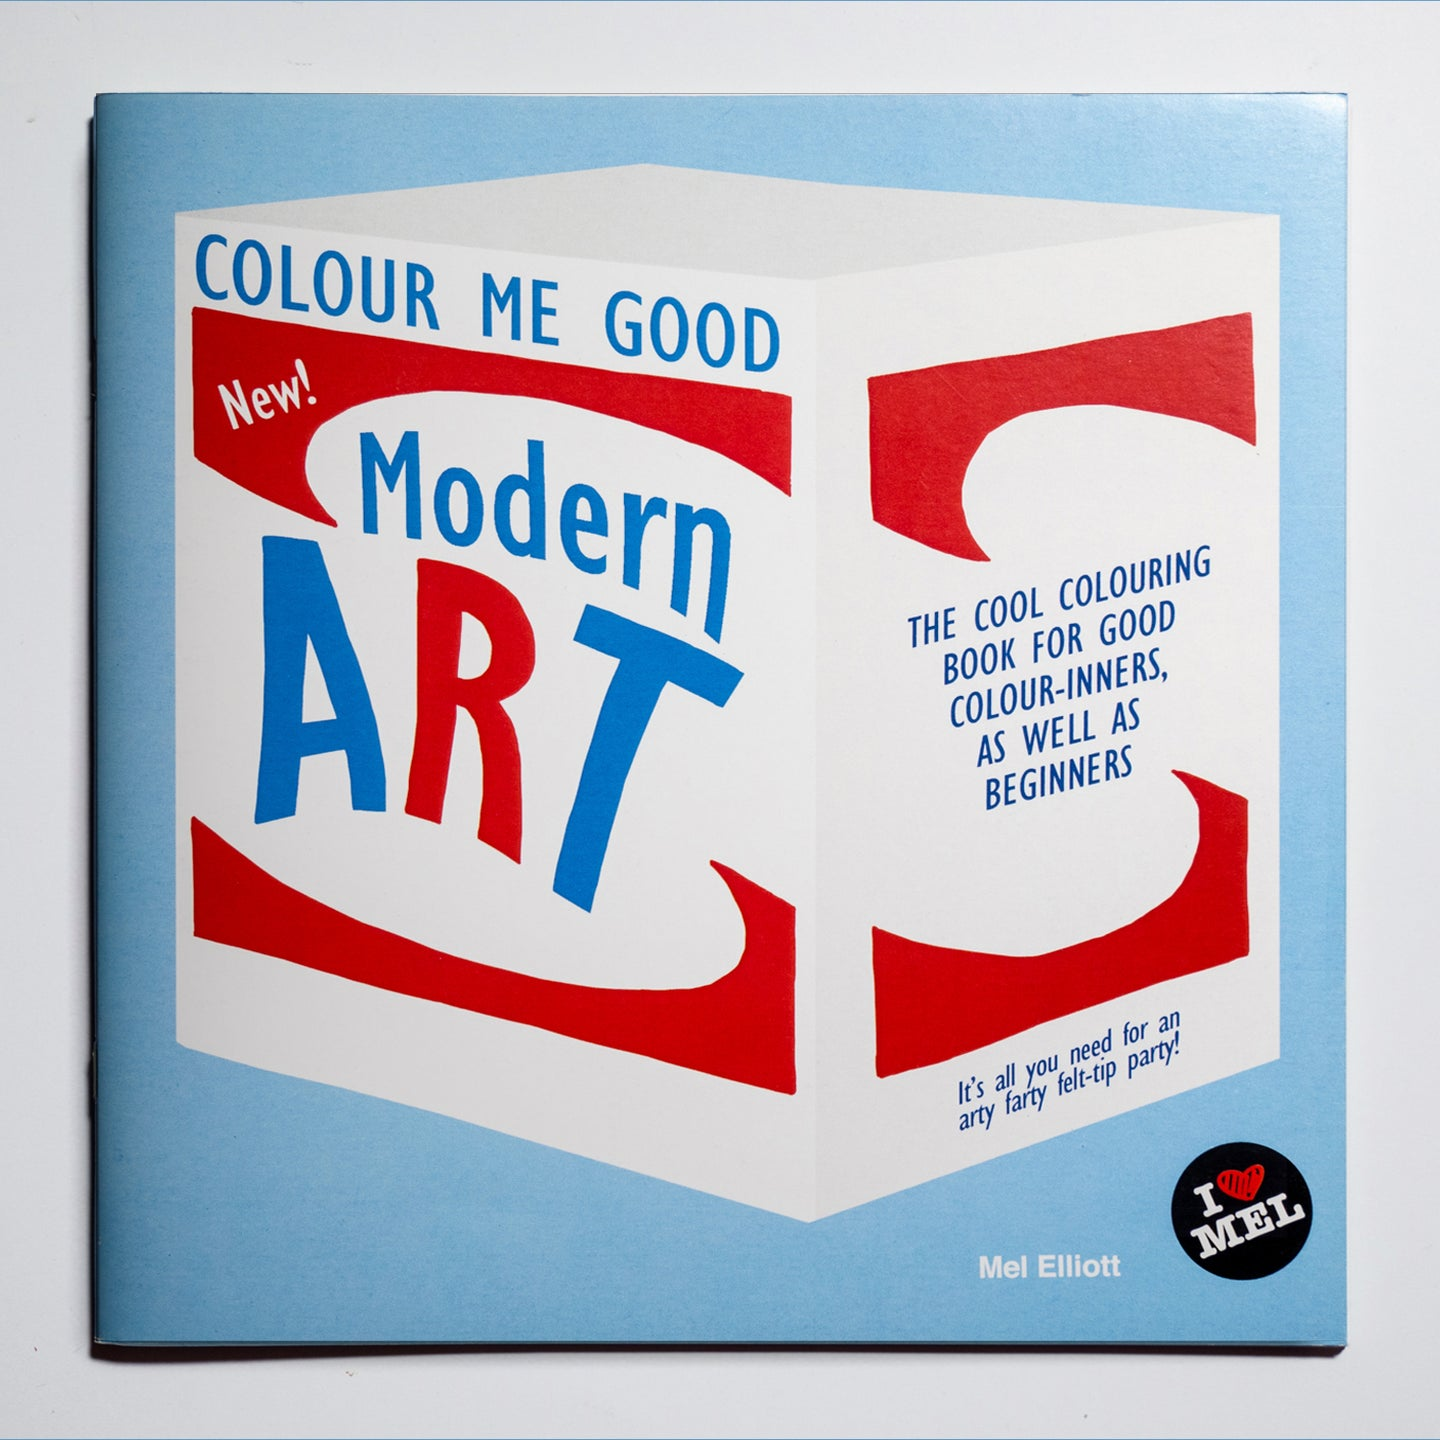 Colour me good: libro de colorear de piezas de arte moderno